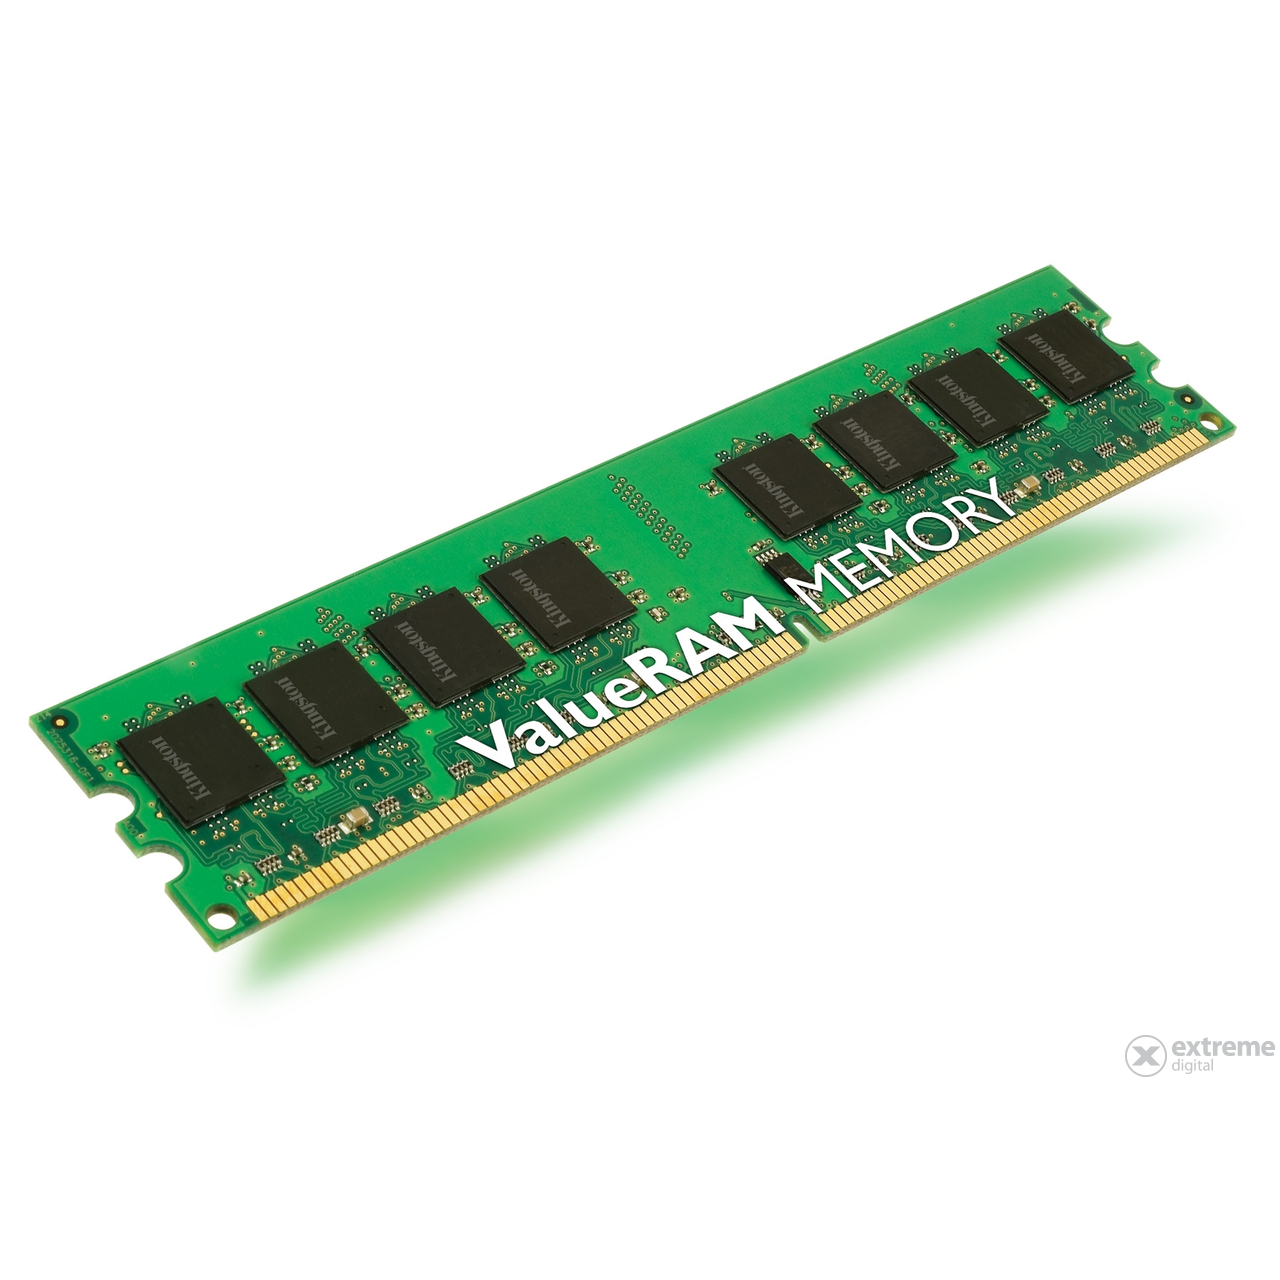 kingston-4gb-800mhz-ddr2-cl6-kit-kvr800d2n6k2-4g-memoria_4b8bdbed.jpg